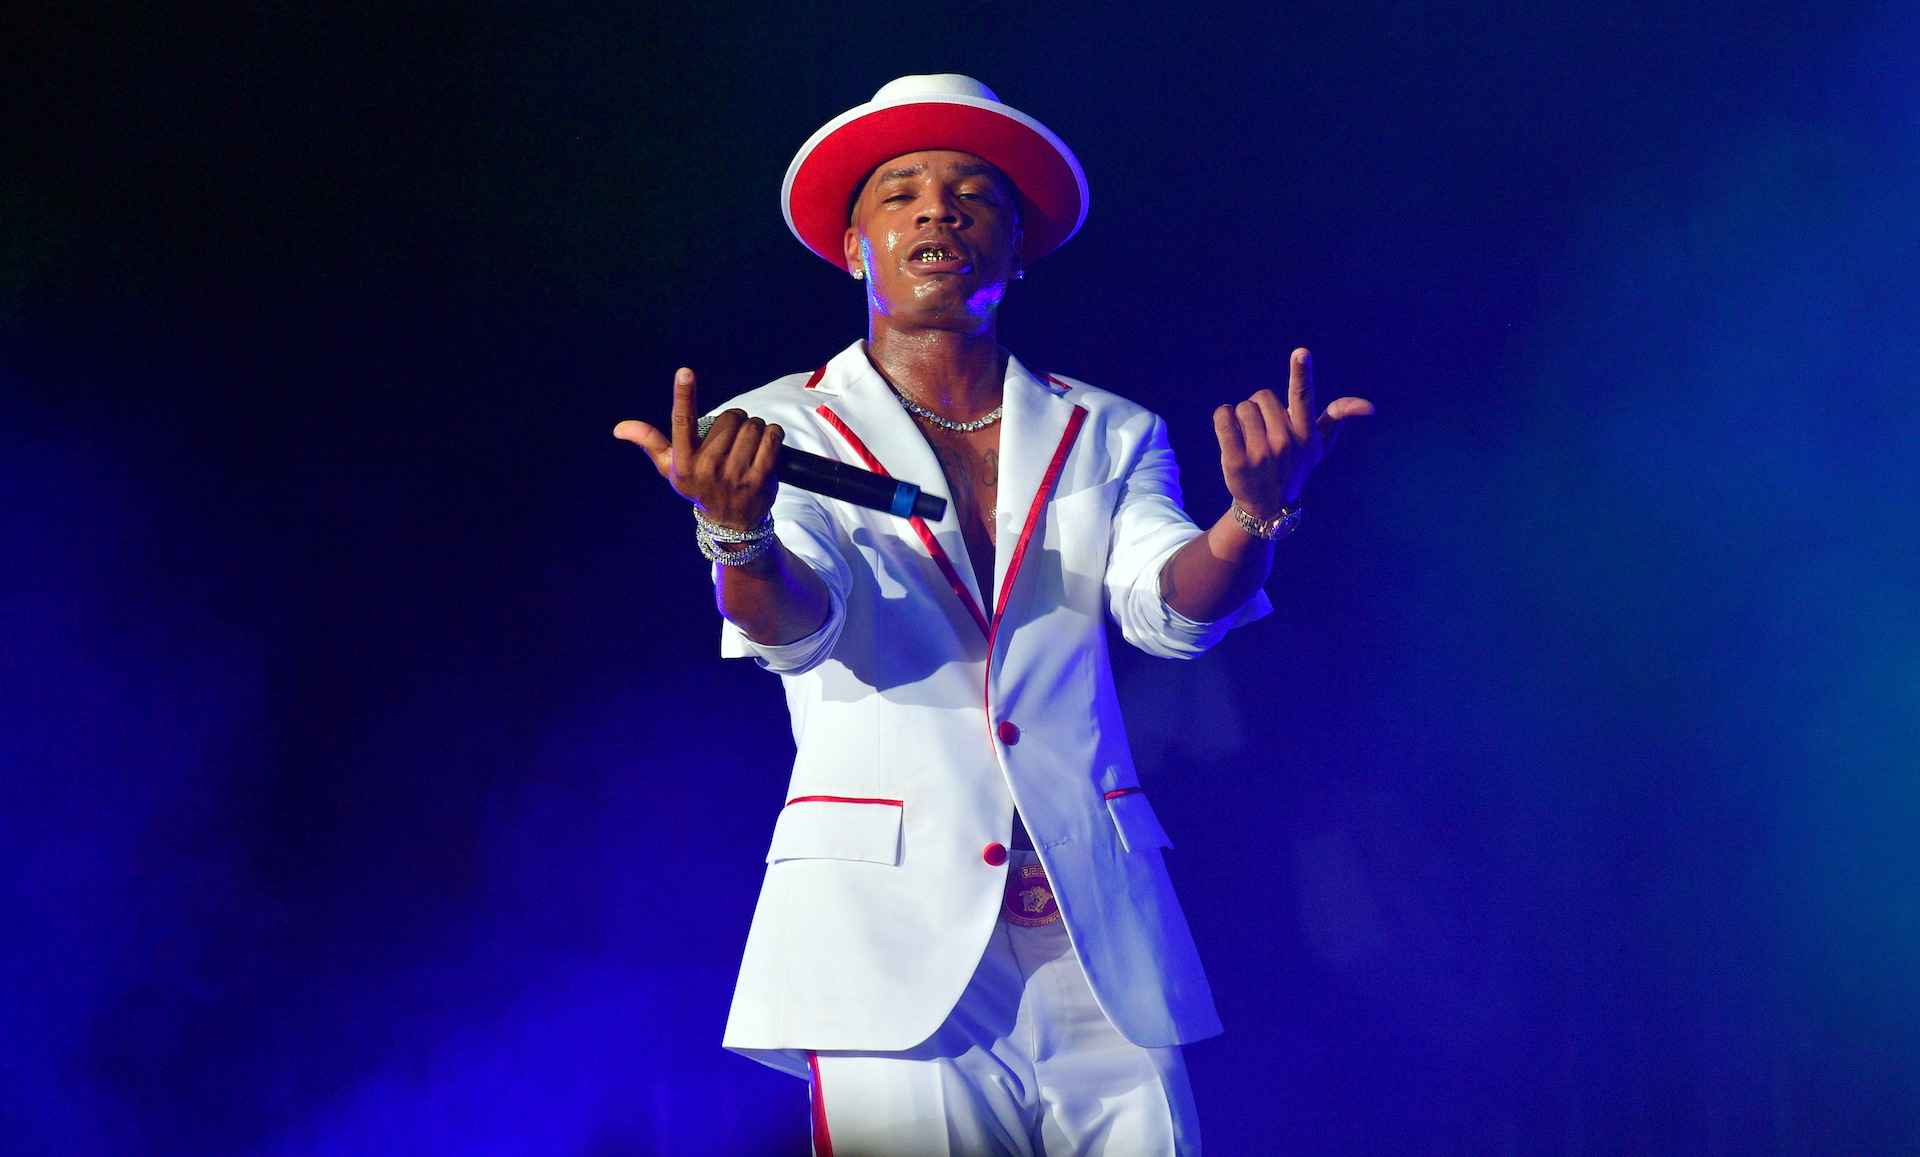 Plies Hilariously Defends Kirk Franklin After Leaked Phone Call: 'That Was Me!'